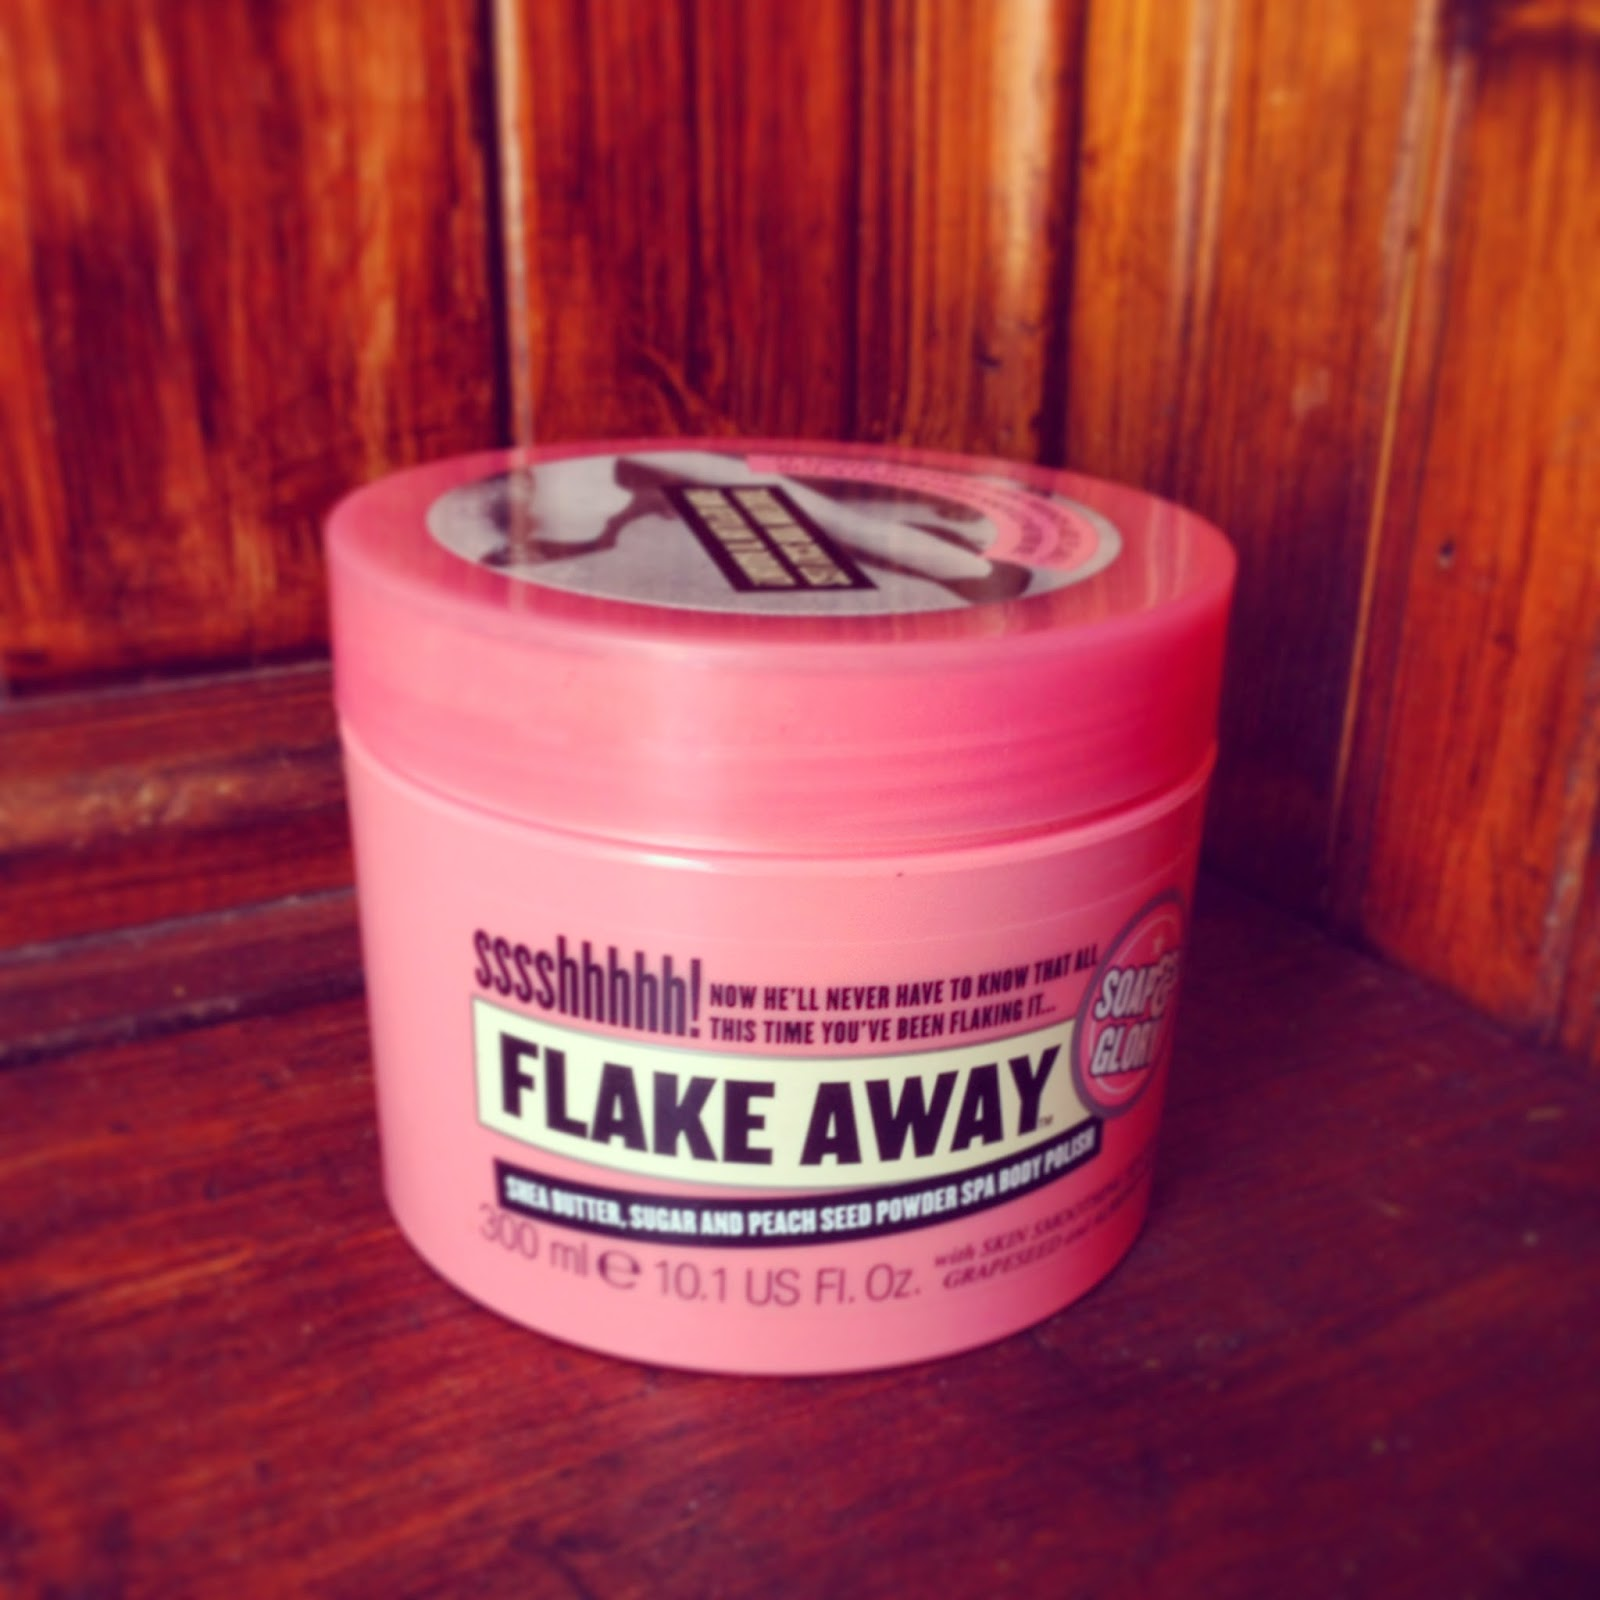 Soap & Glory Flake Away Body Scrub